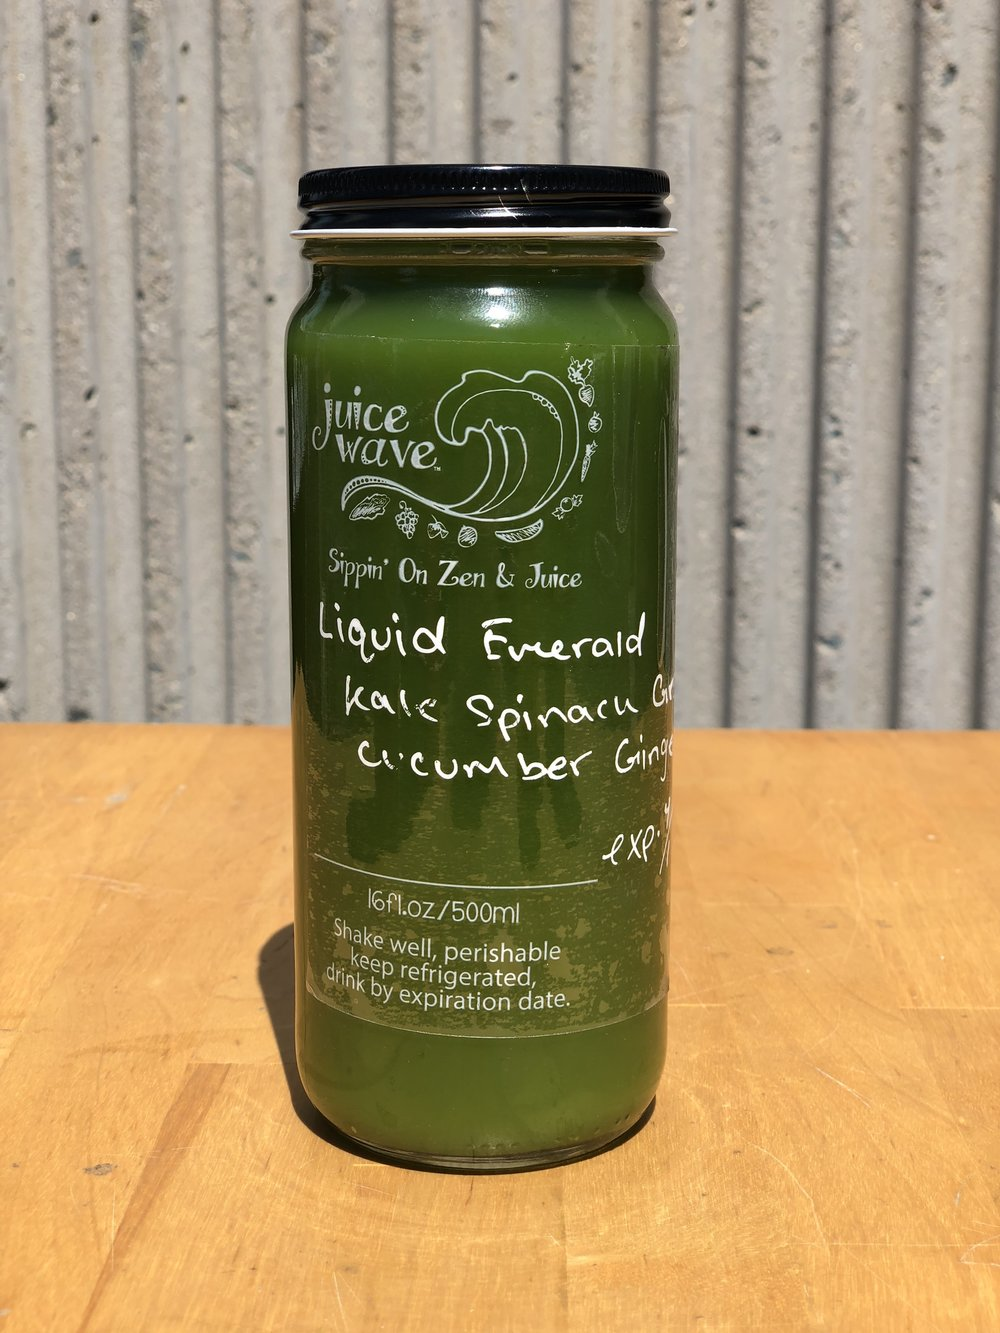 LIQUID EMERALD: Kale. Spinach, Green Apple, Cucumber, Ginger, Lime